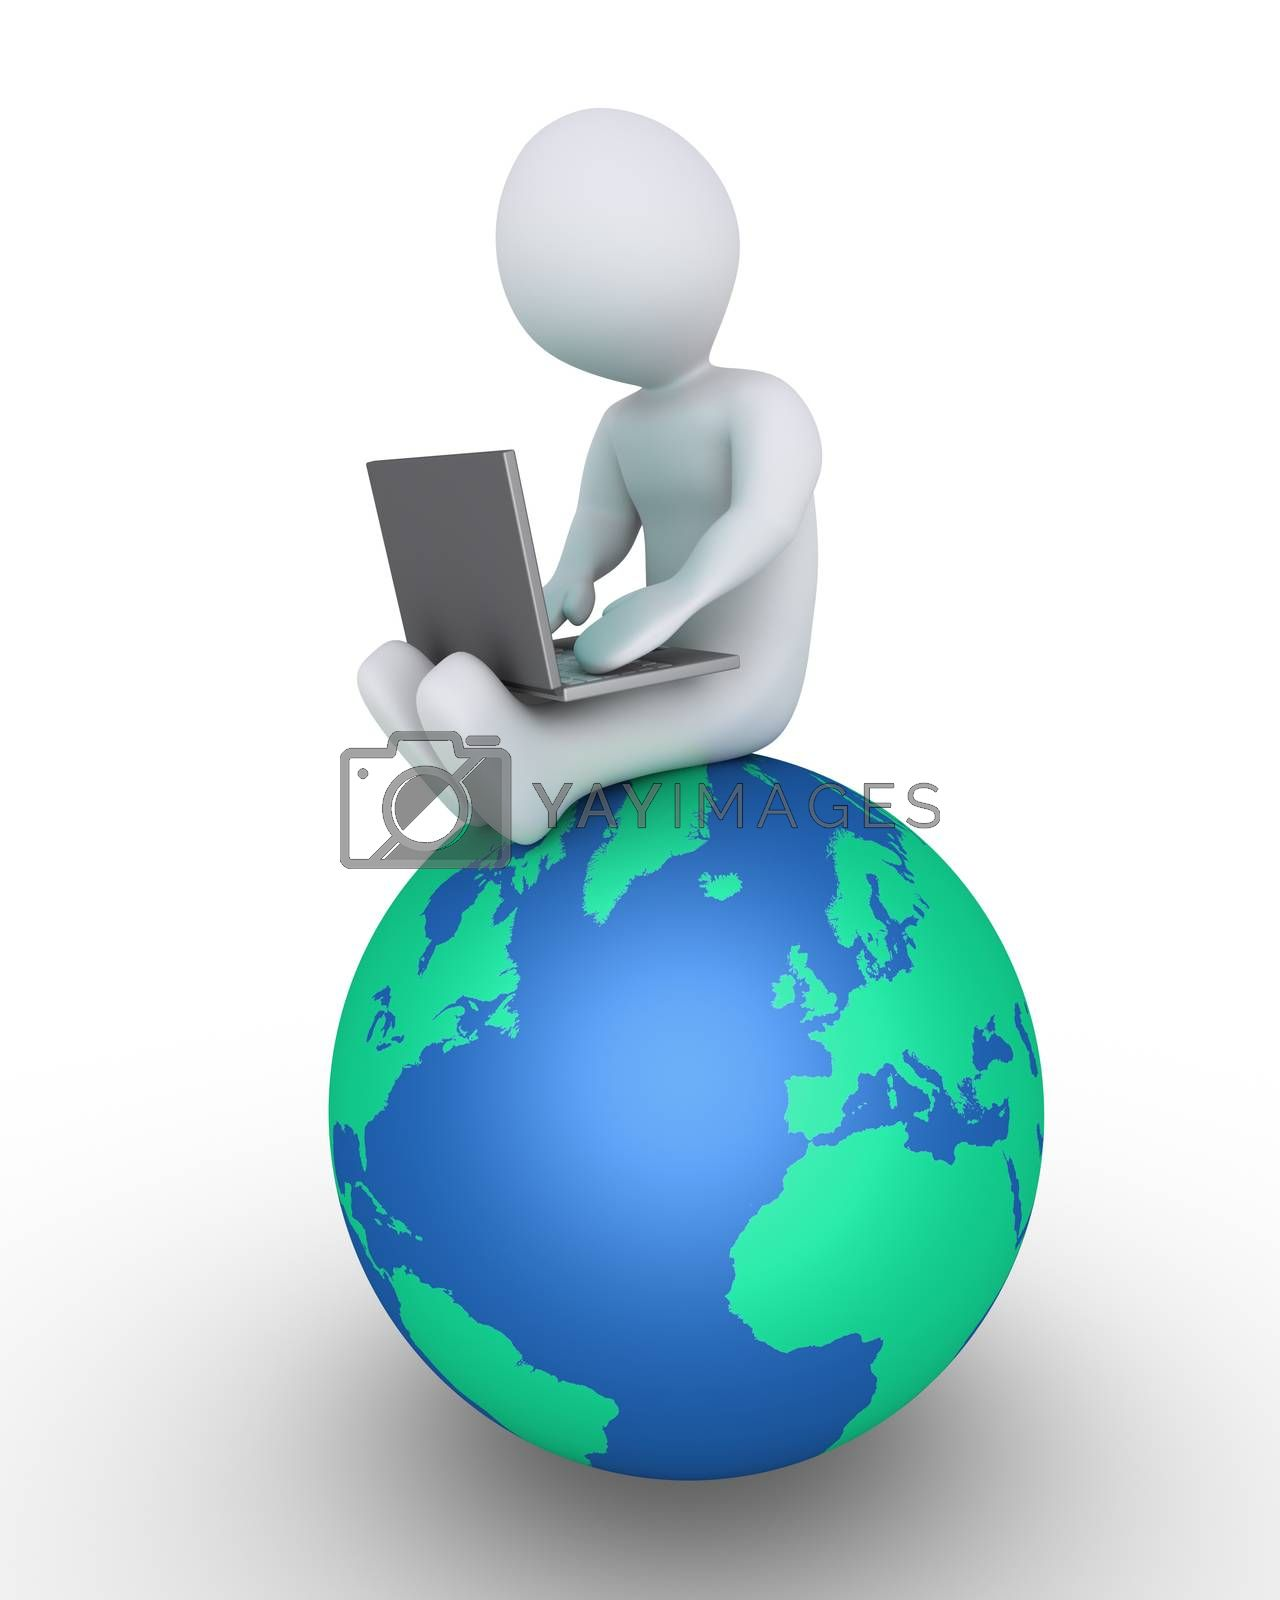 Person is using a laptop and is sitting on the globe